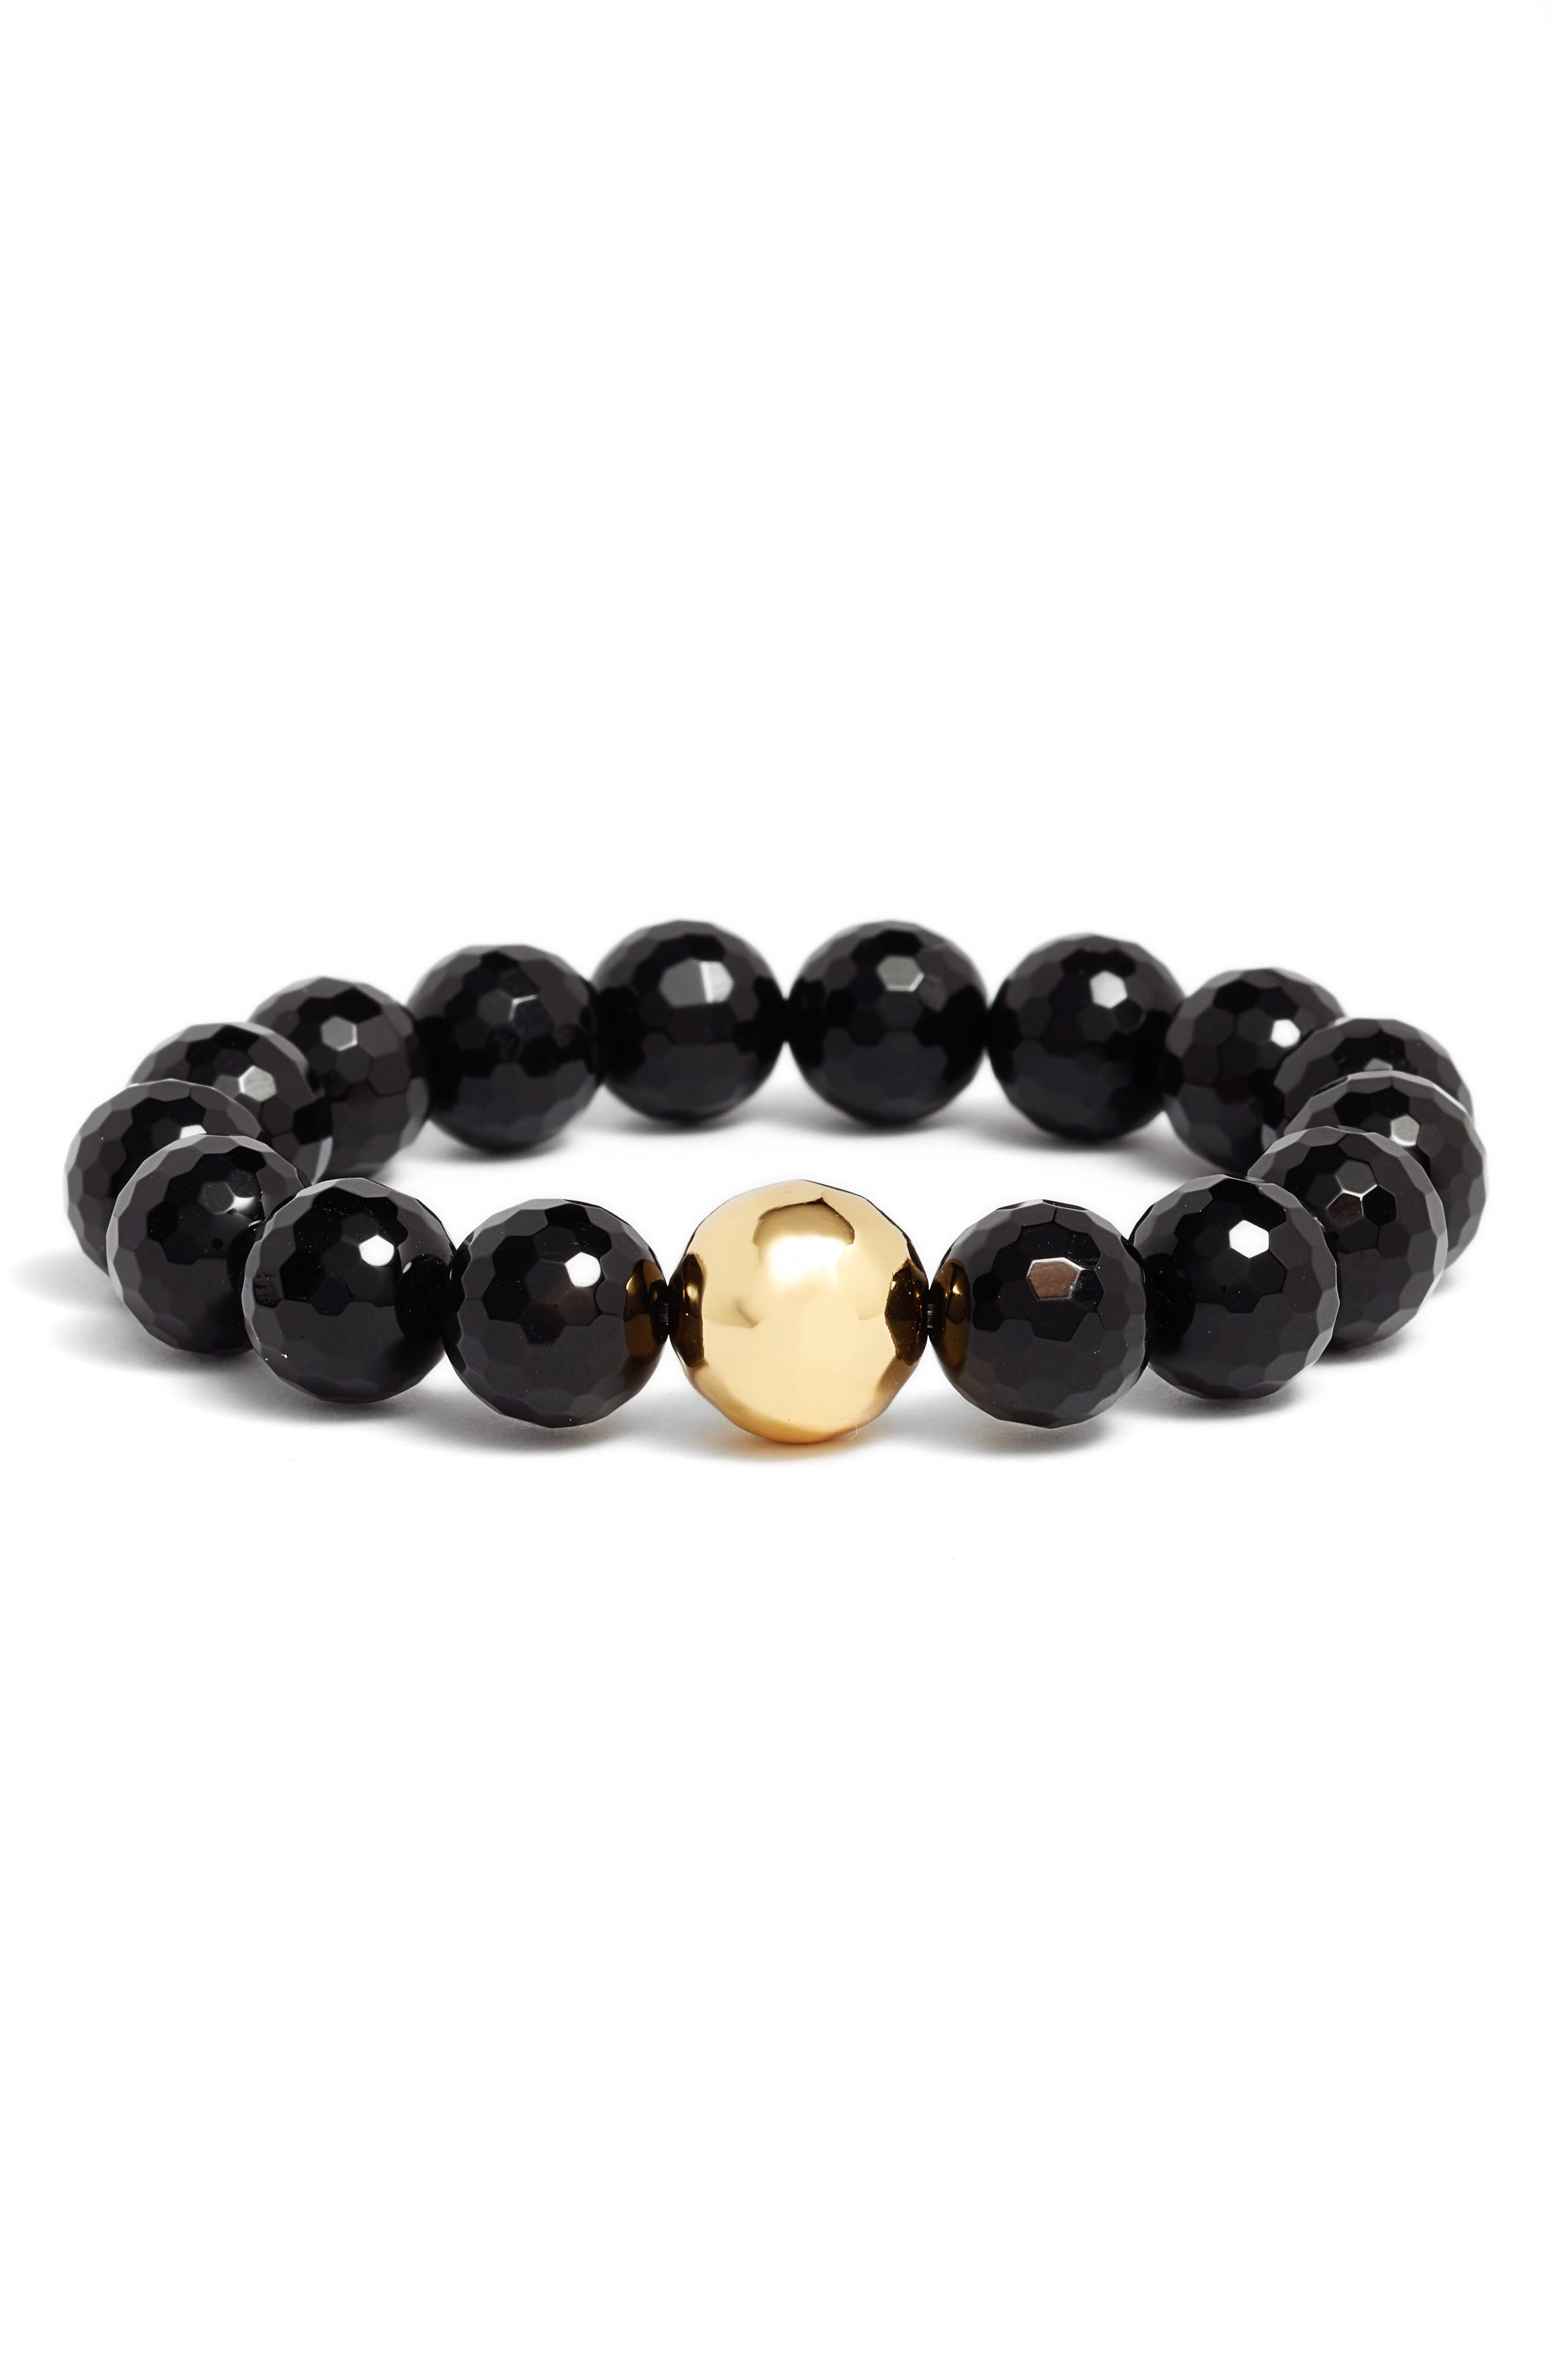 Power Gemstone Black Onyx Protection Bracelet,                         Main,                         color, Black Onyx/ Gold